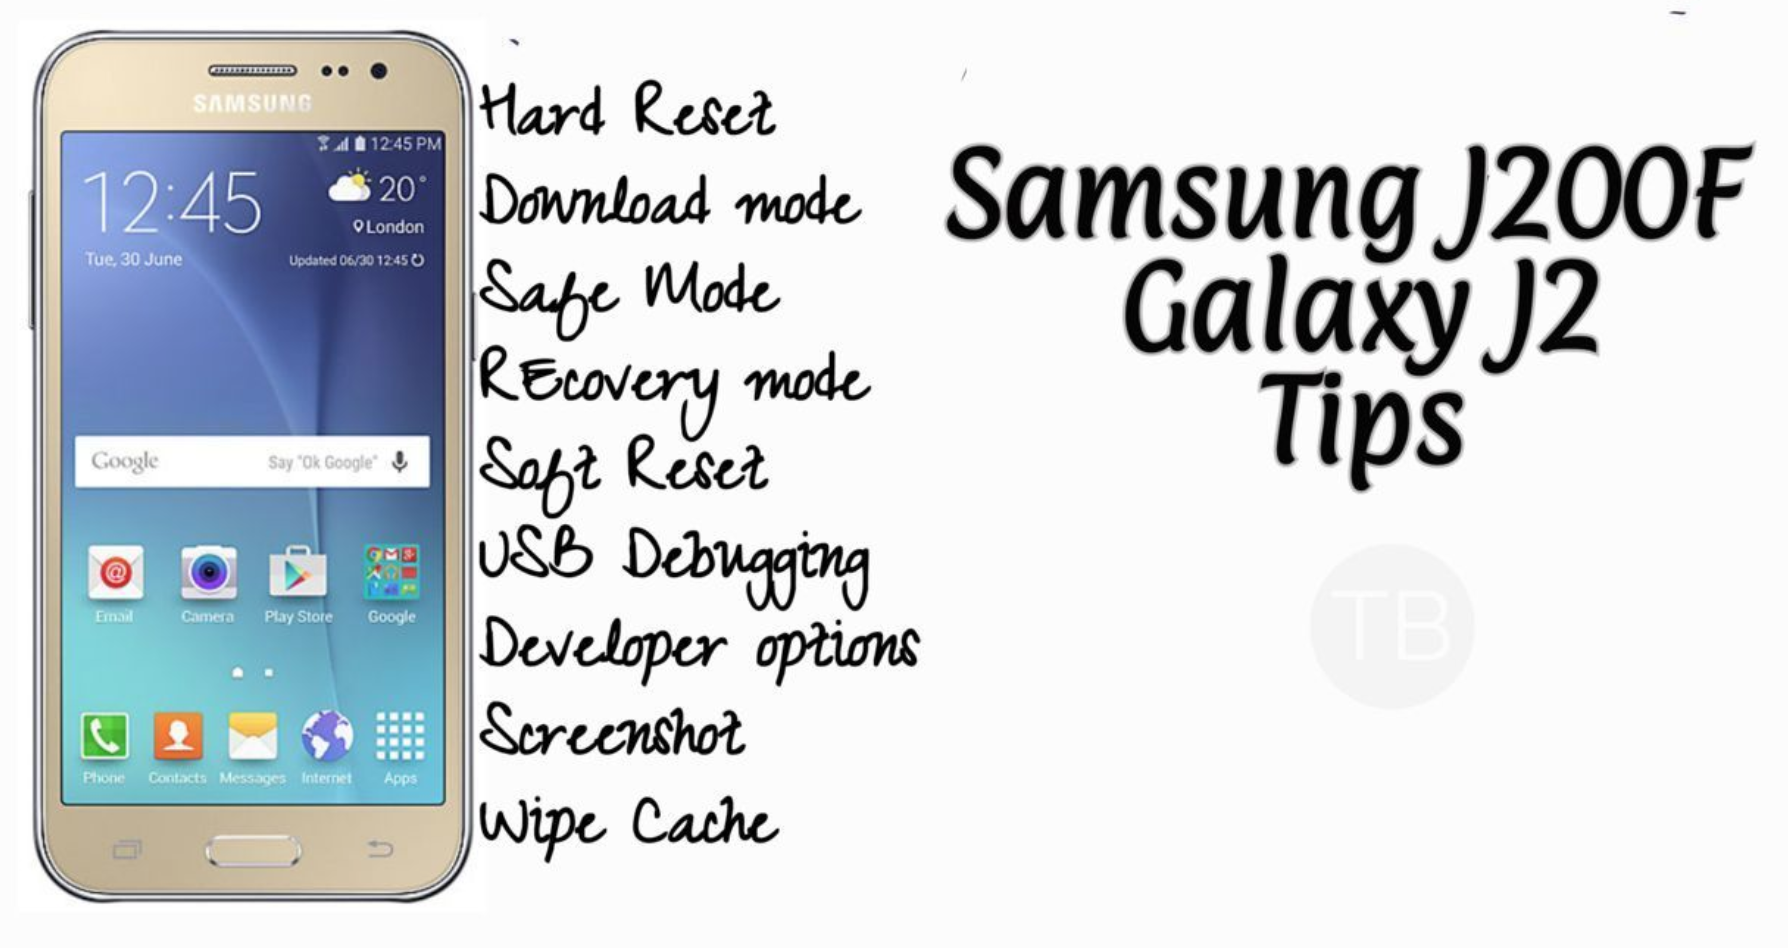 Samsung J2 Wallpaper Images: Samsung J200F Galaxy J2 Tips & Tricks: Hard Reset